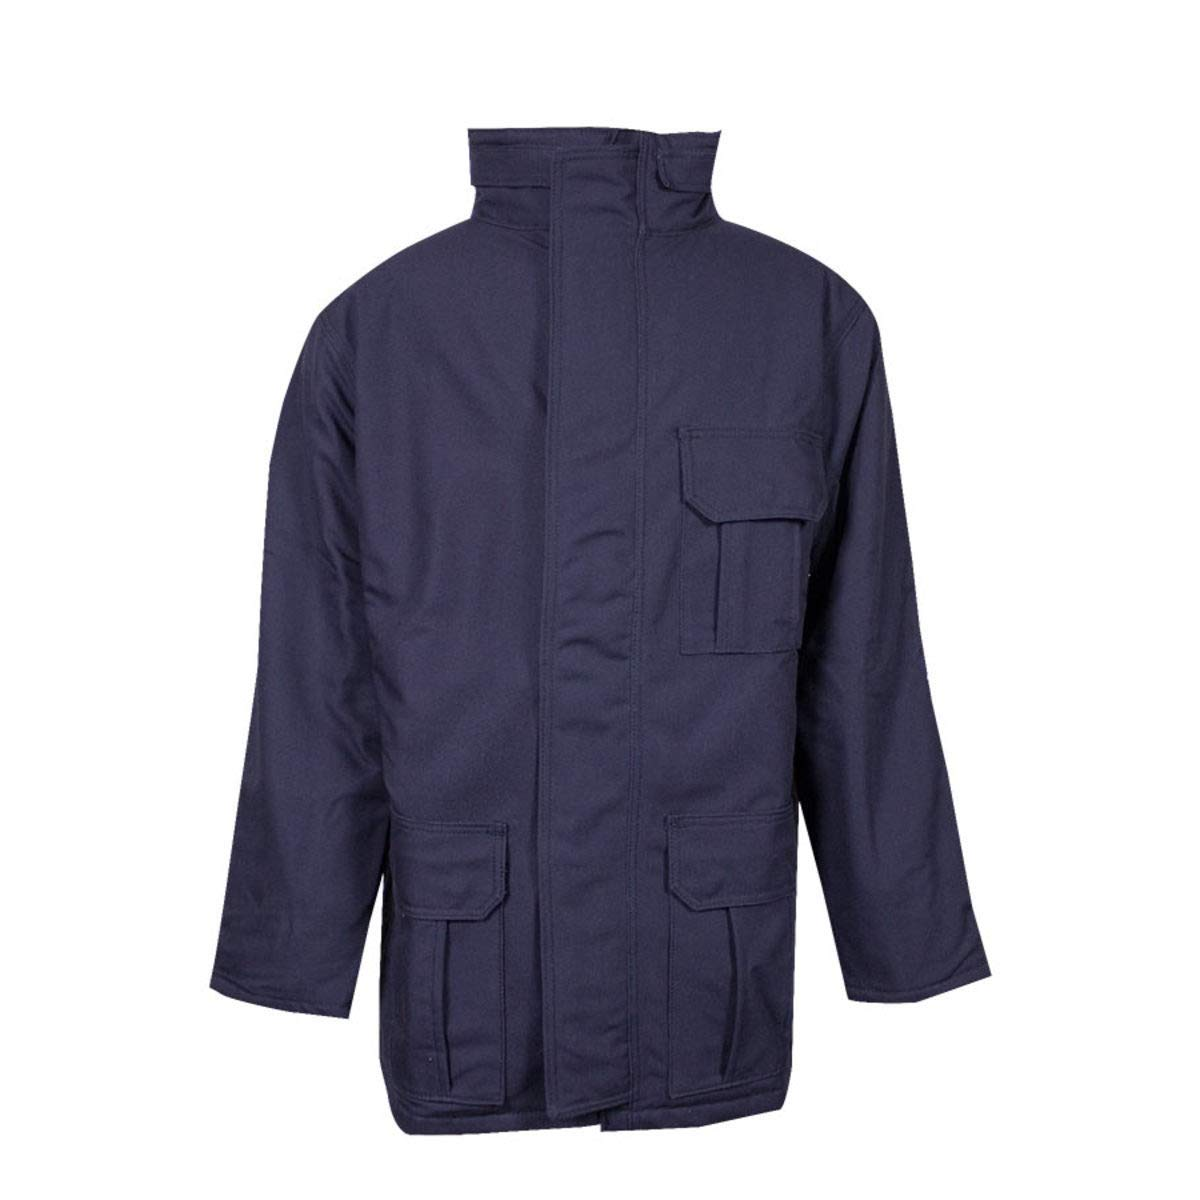 National Safety Apparel Large Navy UltraSoft Duck Flame Resistant Parka With Quilted Lining And Zipper Closure